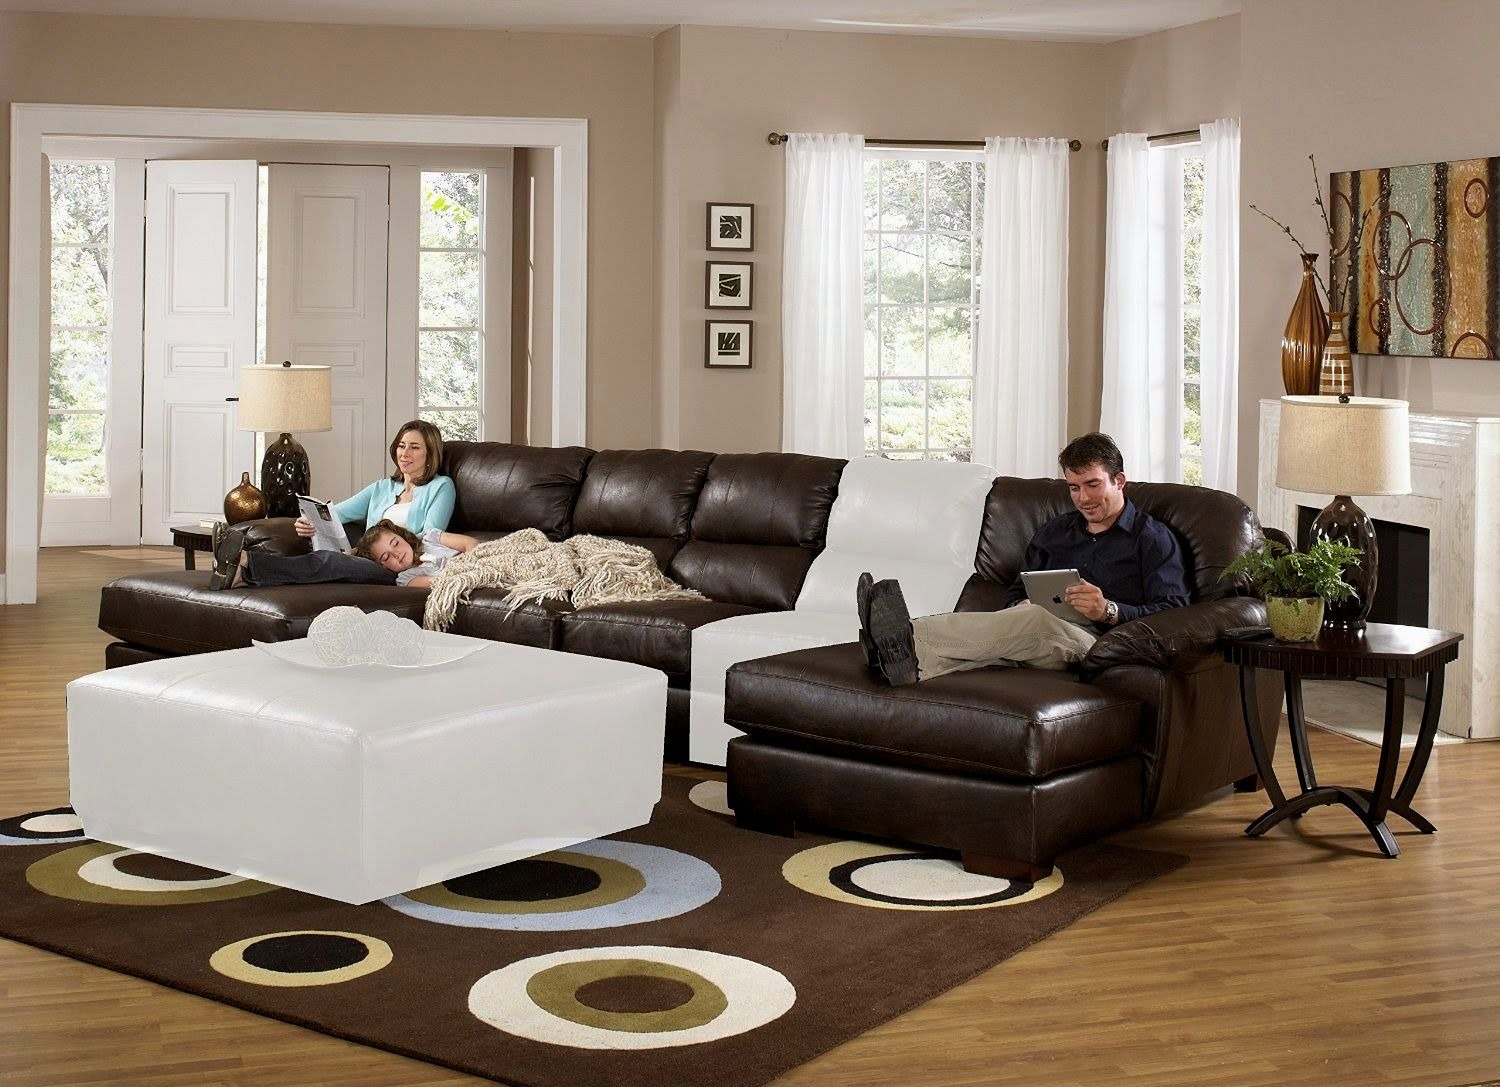 excellent gray sectional sofa online-Lovely Gray Sectional sofa Inspiration